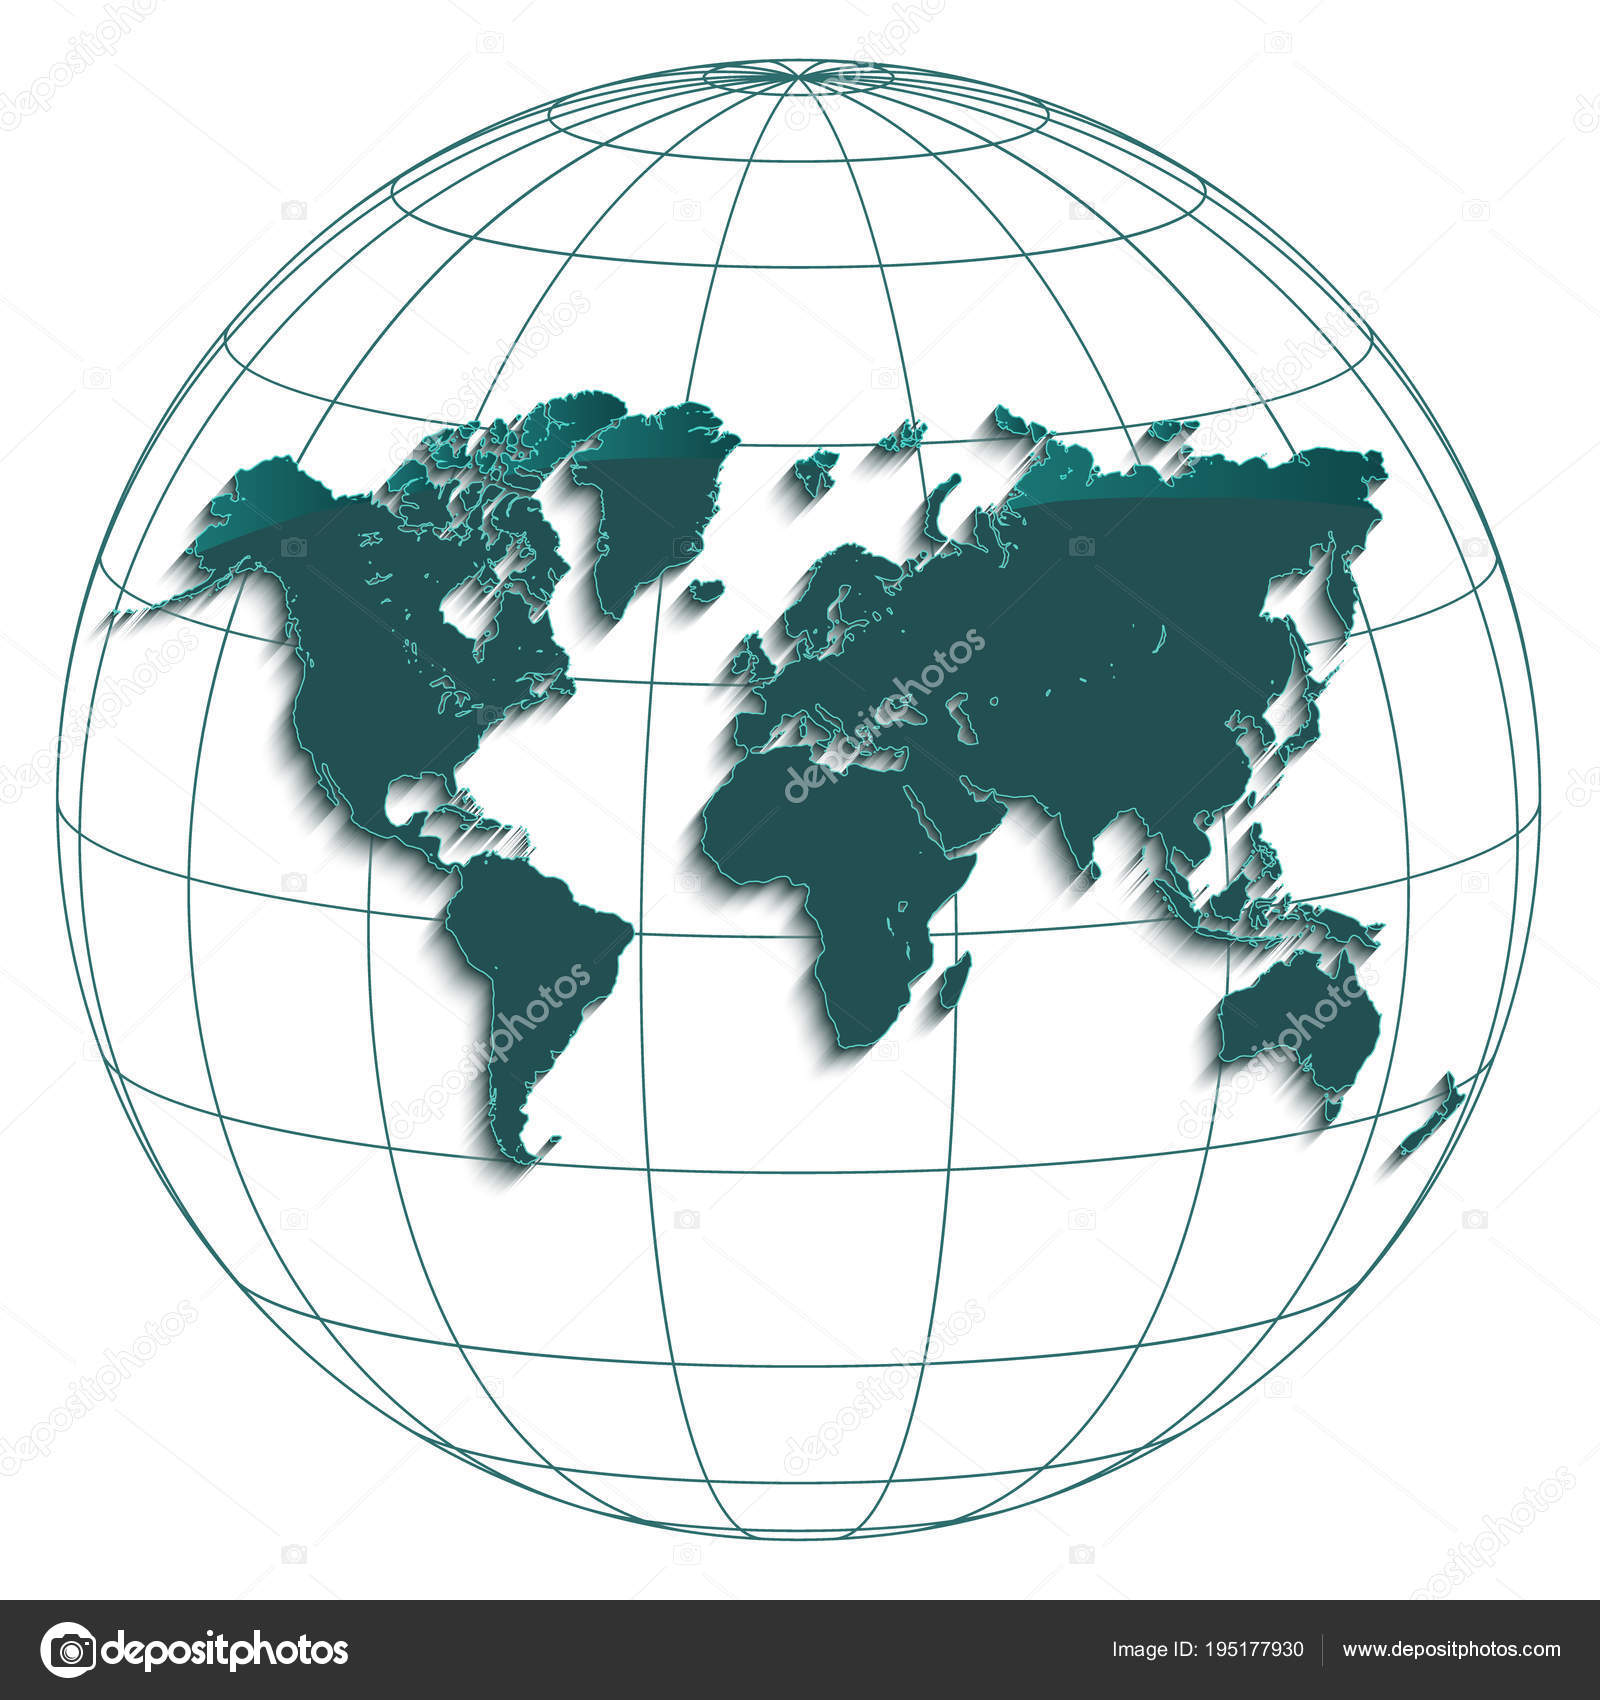 Geographic Map Of Earth.World Map Globe Earth Globus Geographic Coordinates White Background